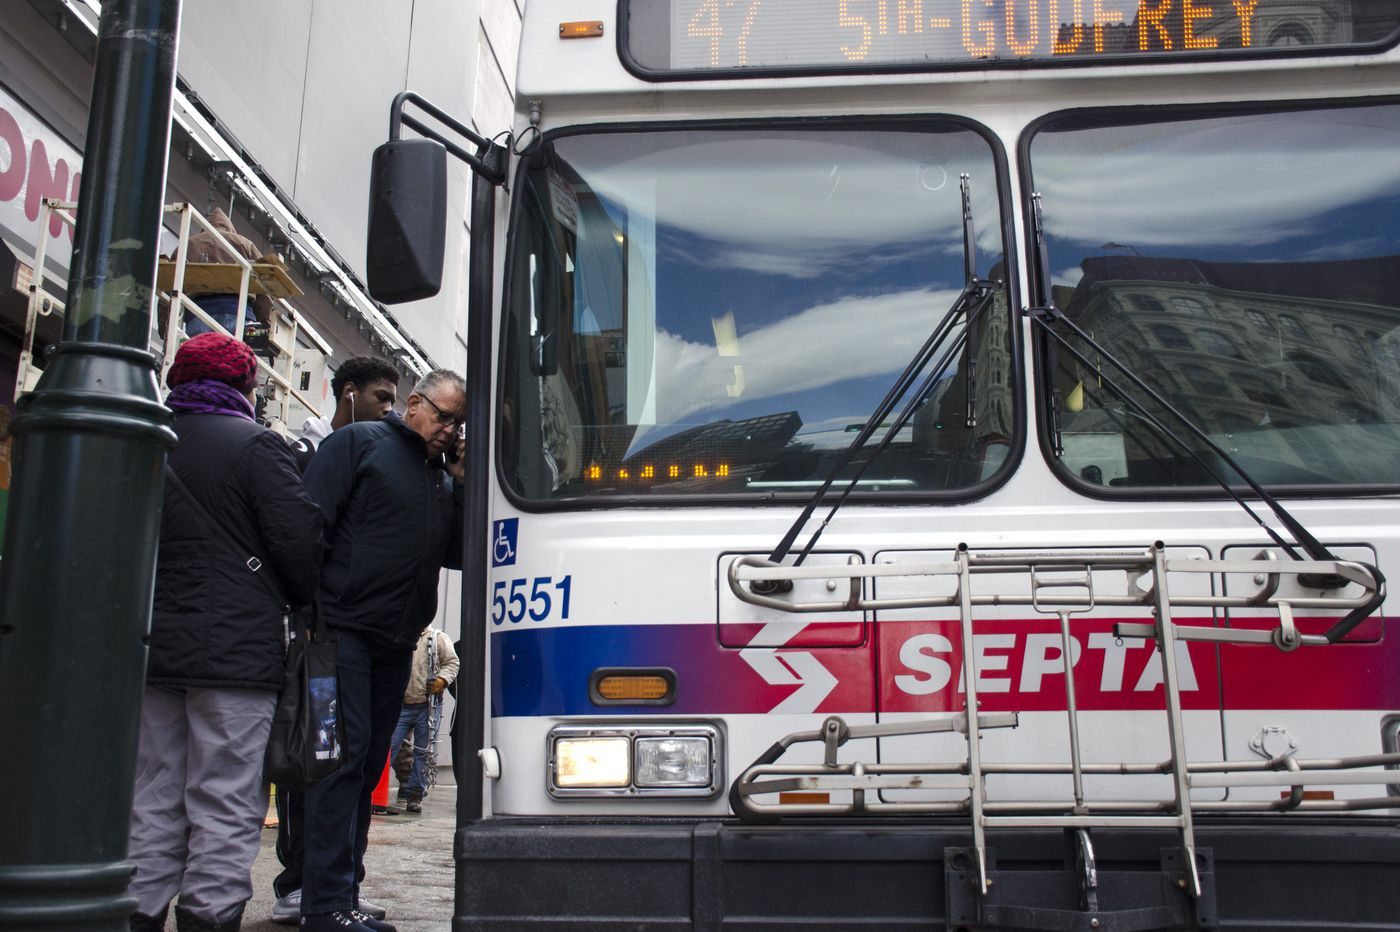 Woman in wheelchair barred from boarding SEPTA bus